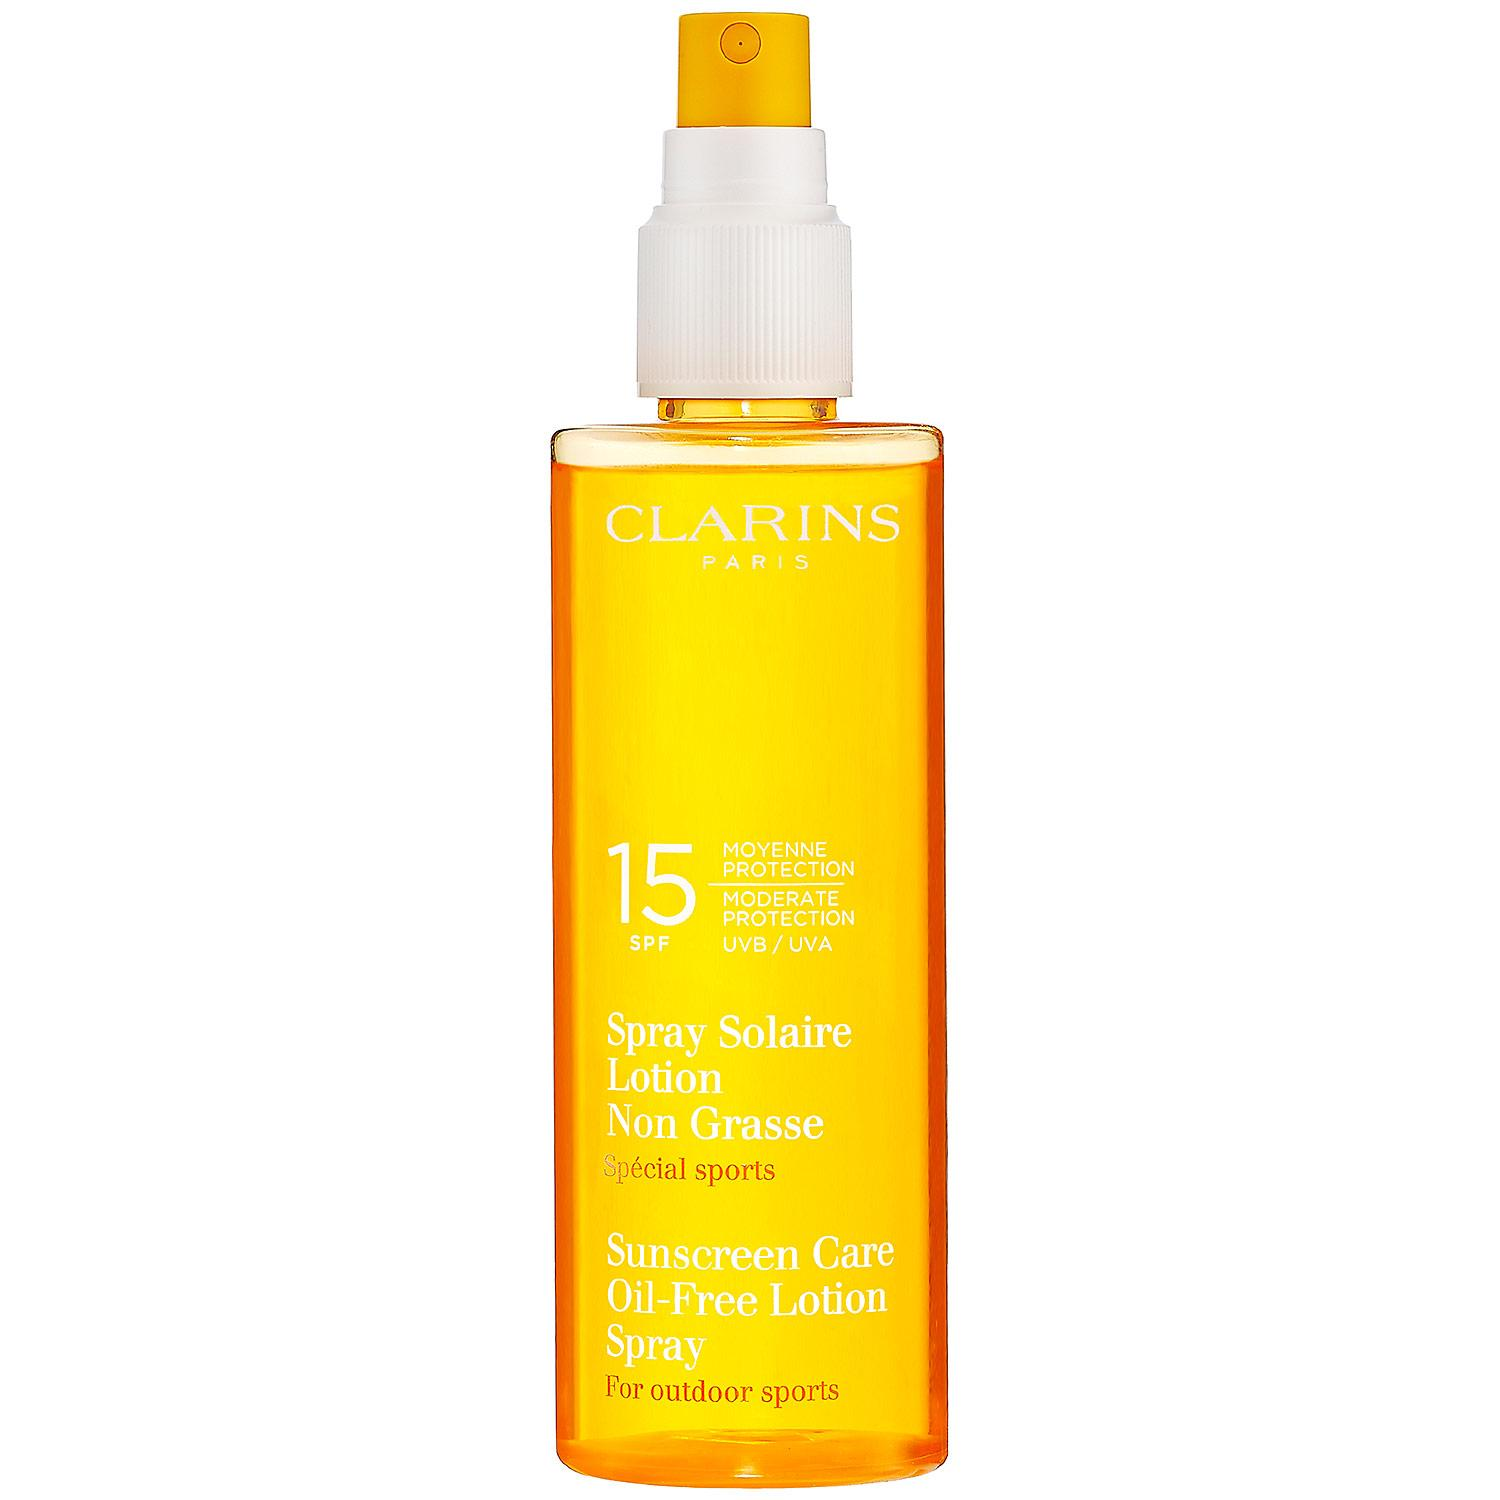 clarins sunscreen spray oil free lotion progressive tanning spf 15 questions and reviews. Black Bedroom Furniture Sets. Home Design Ideas